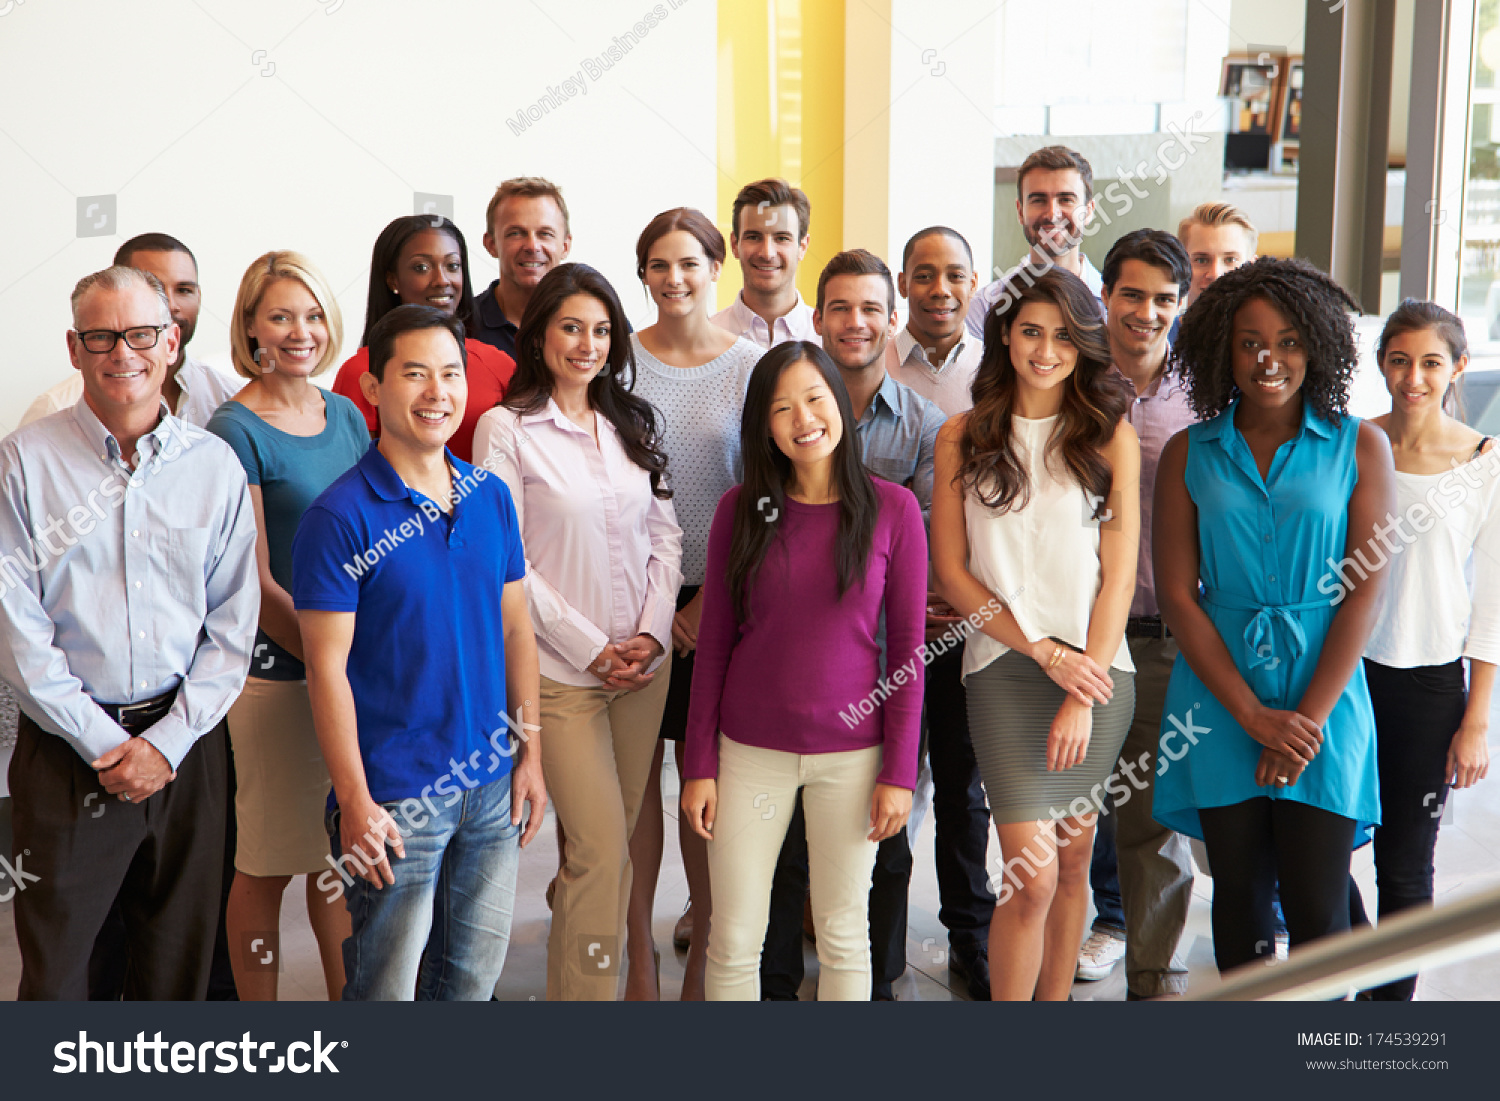 """dissertation proposal on managing diversity of Title: """"the profit impact of organisational gender diversity programs""""  research  proposal now complete and looking for sponsorsin gender diversity  a real  job like it program manager, managing director, consultant,."""